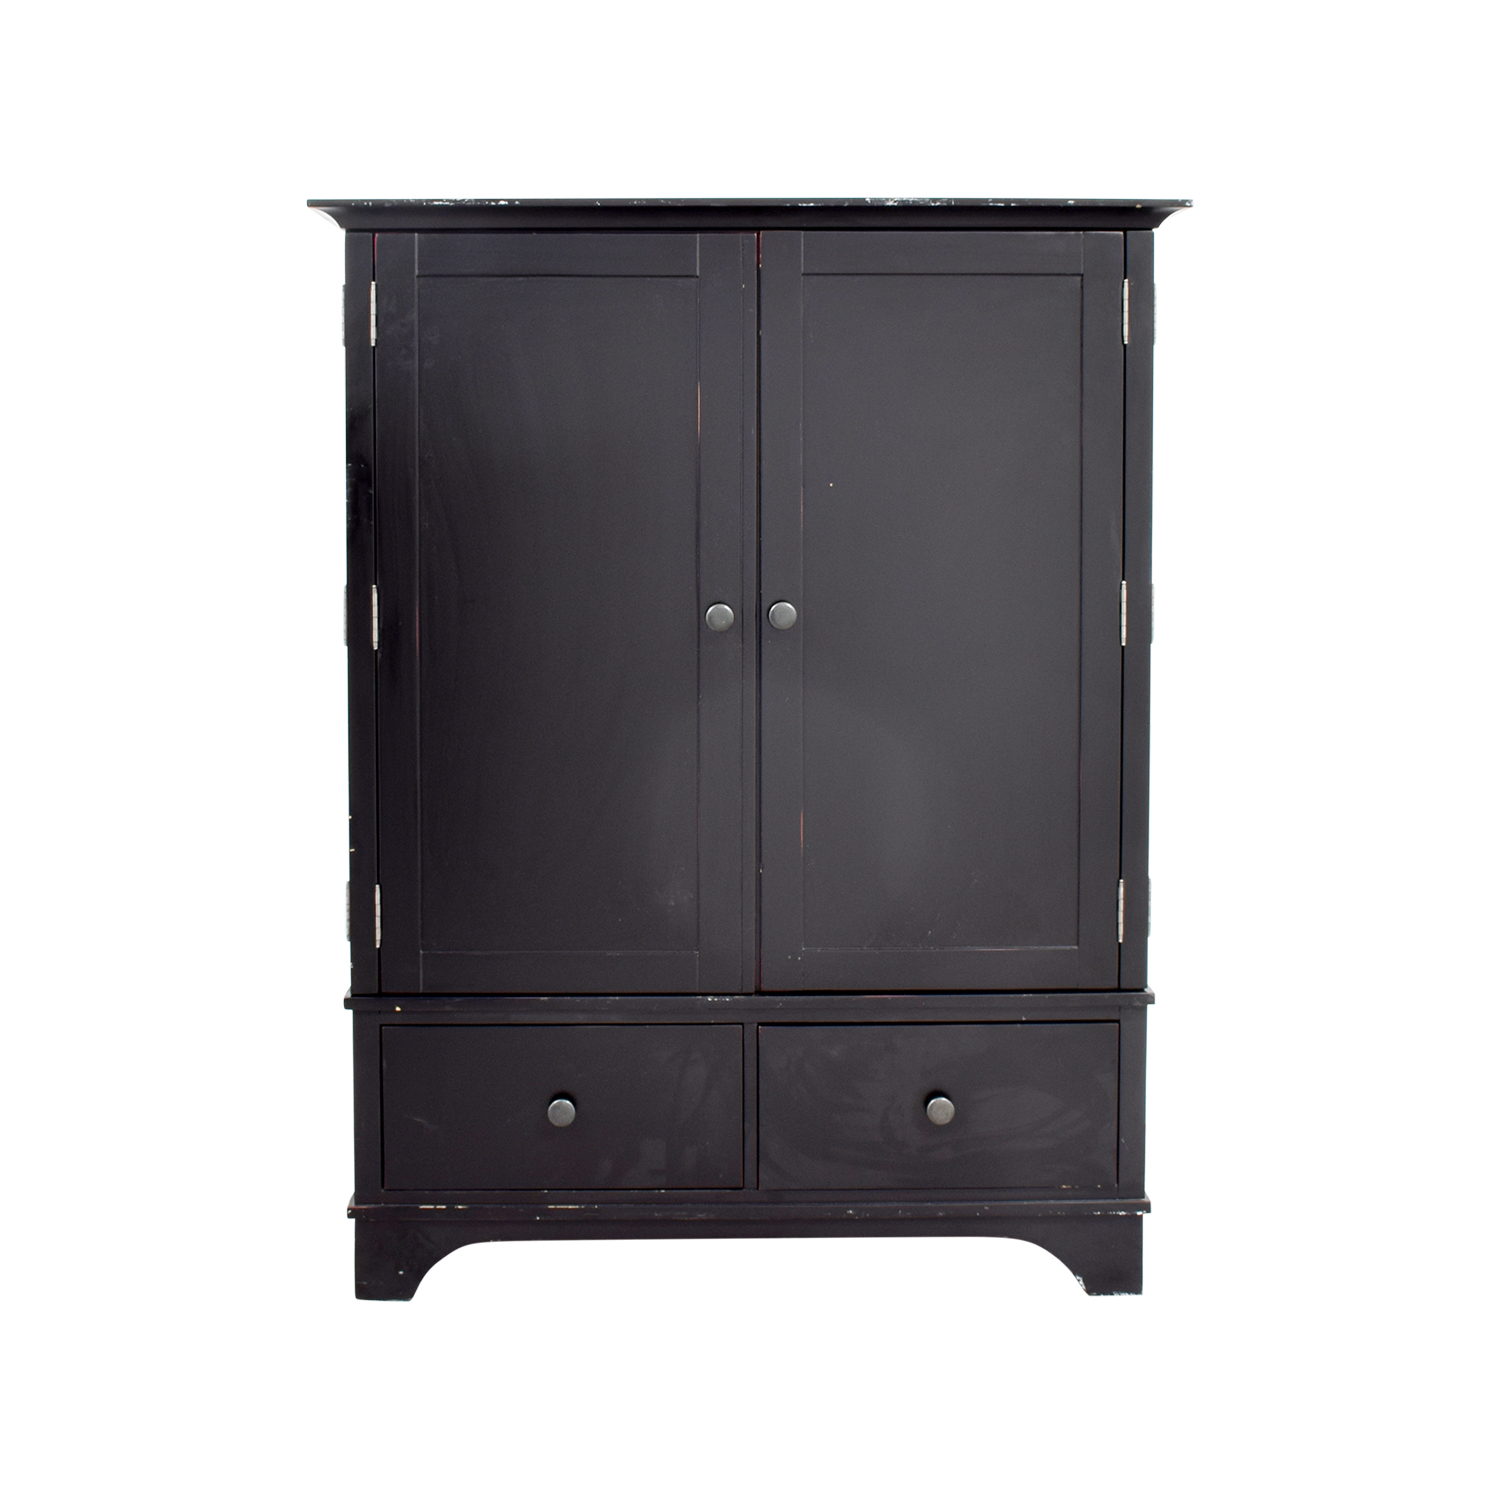 used tv armoire 28 images tv armoire 28 images bebe. Black Bedroom Furniture Sets. Home Design Ideas